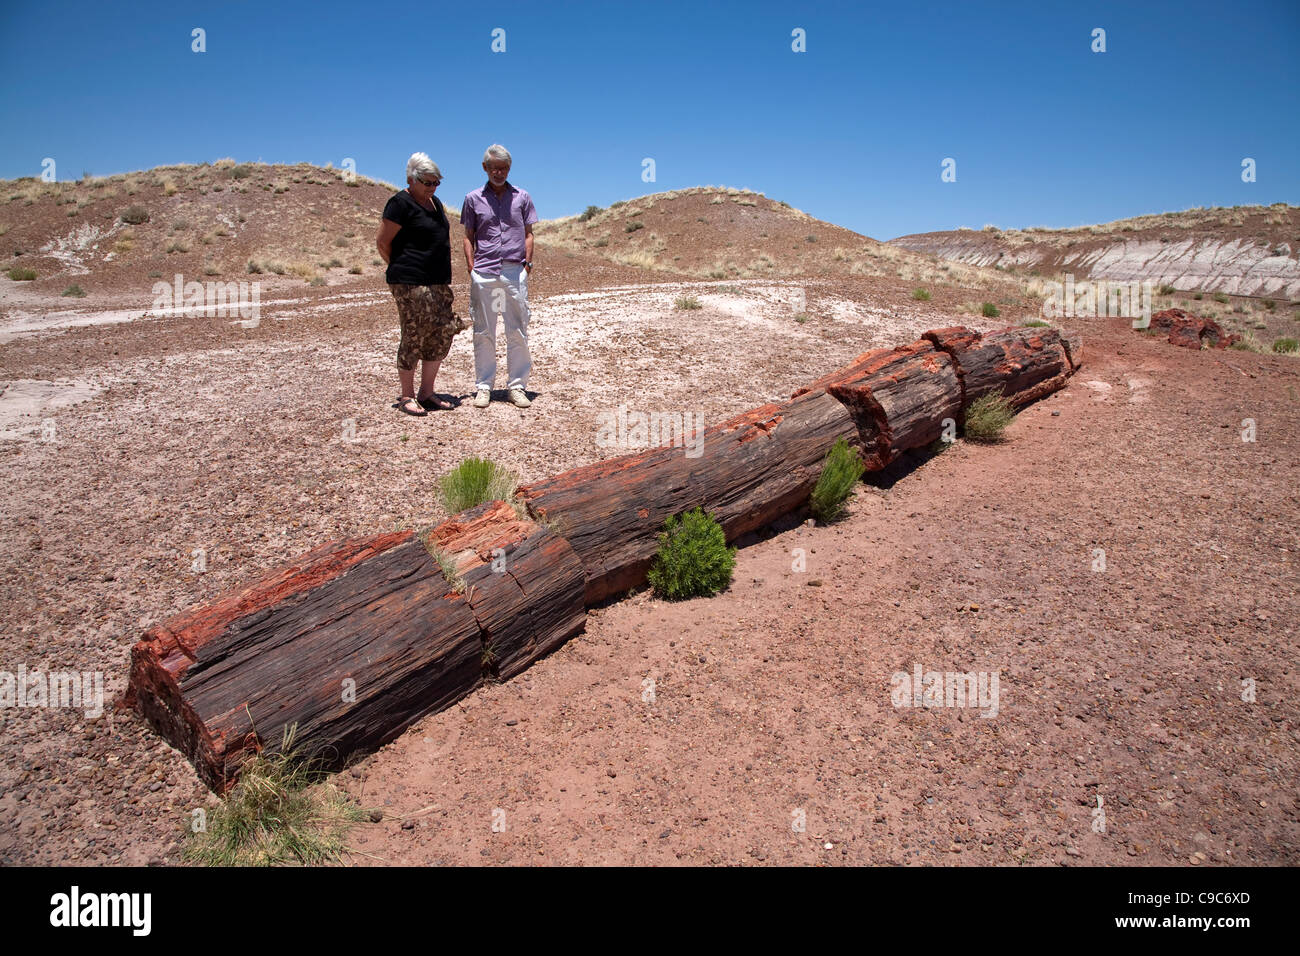 tourists looking at a fossilized tree trunk in Petrified Forest National Park in Arizona USA on a sunny summer day - Stock Image